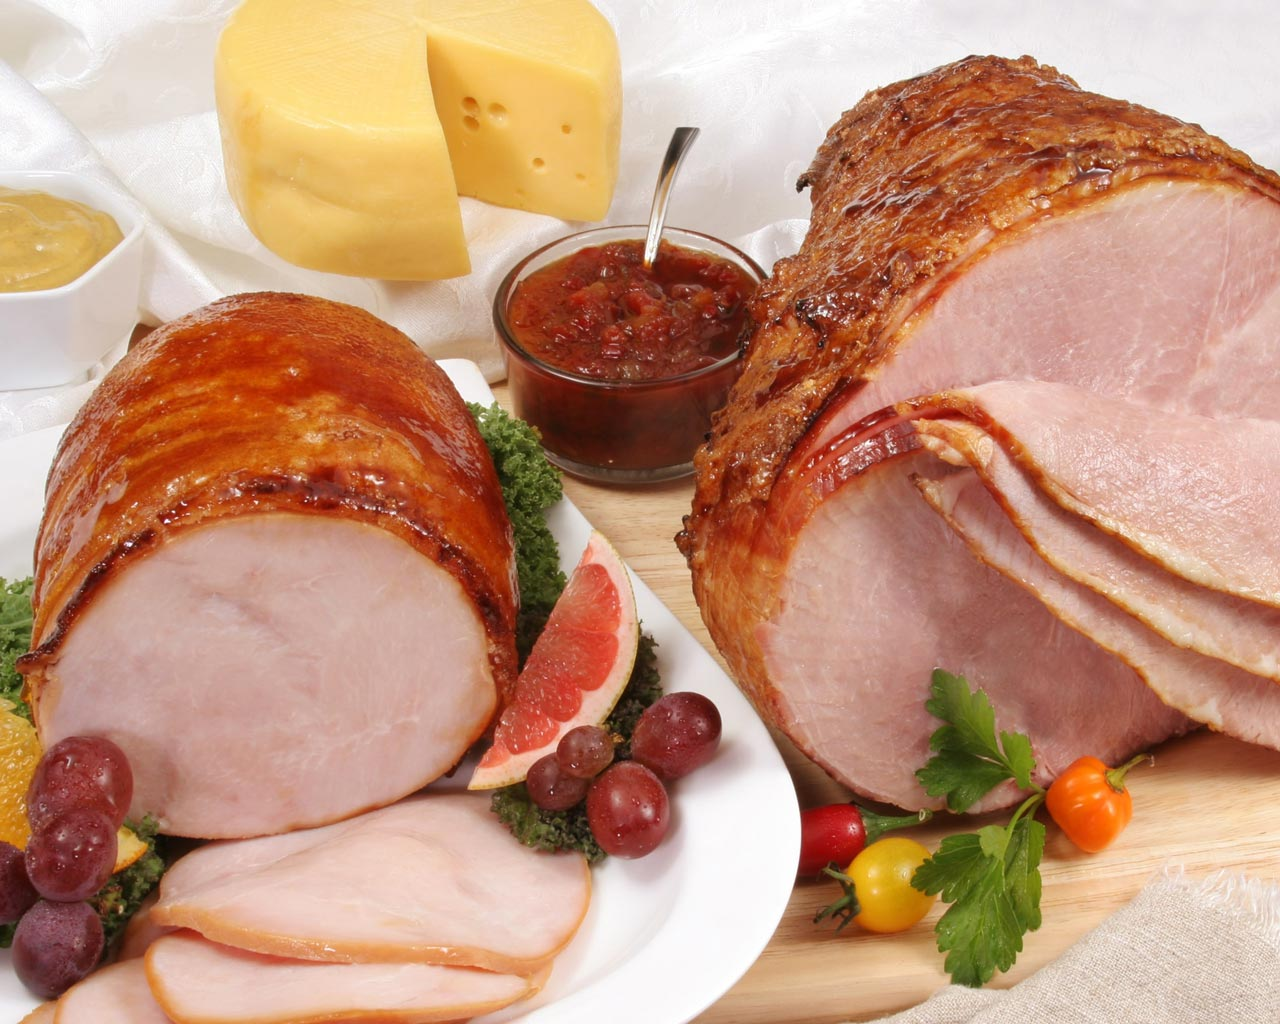 Holiday Ham, Turkey Breast, Swiss Cheese Combo with condiments